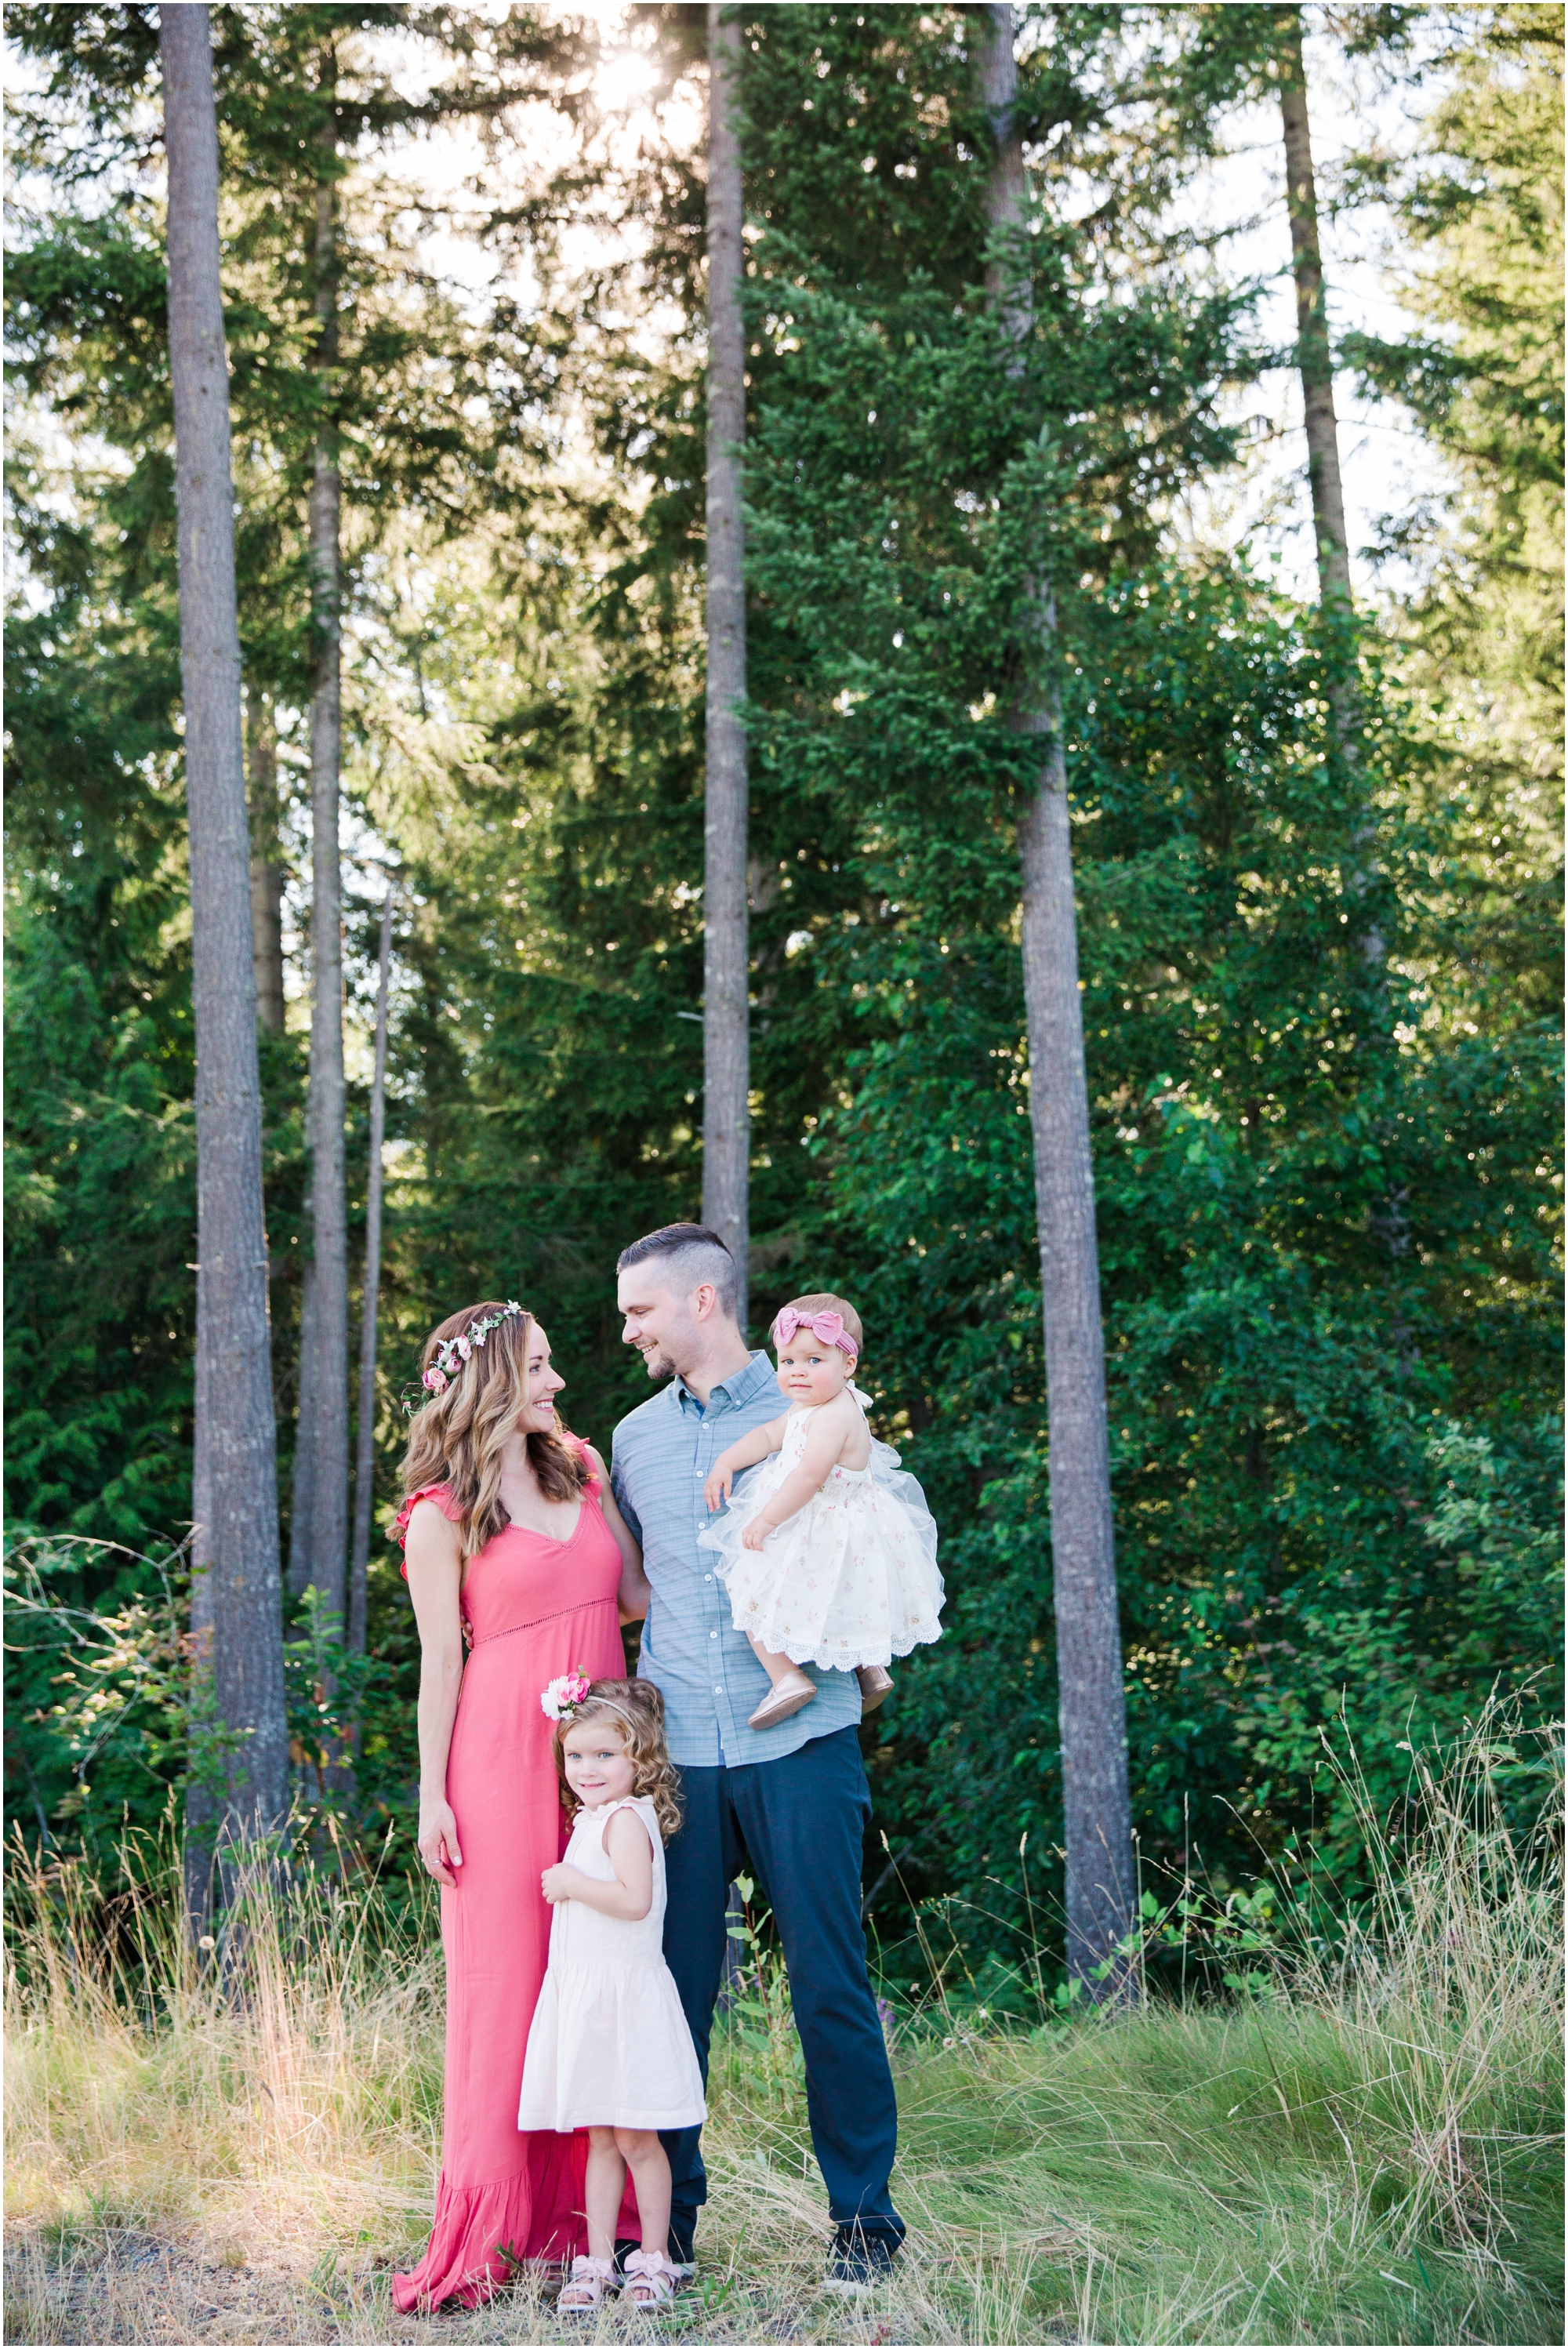 One year old photos by Briana Calderon Photography based in the Greater Seattle & Tacoma, WA_0684.jpg